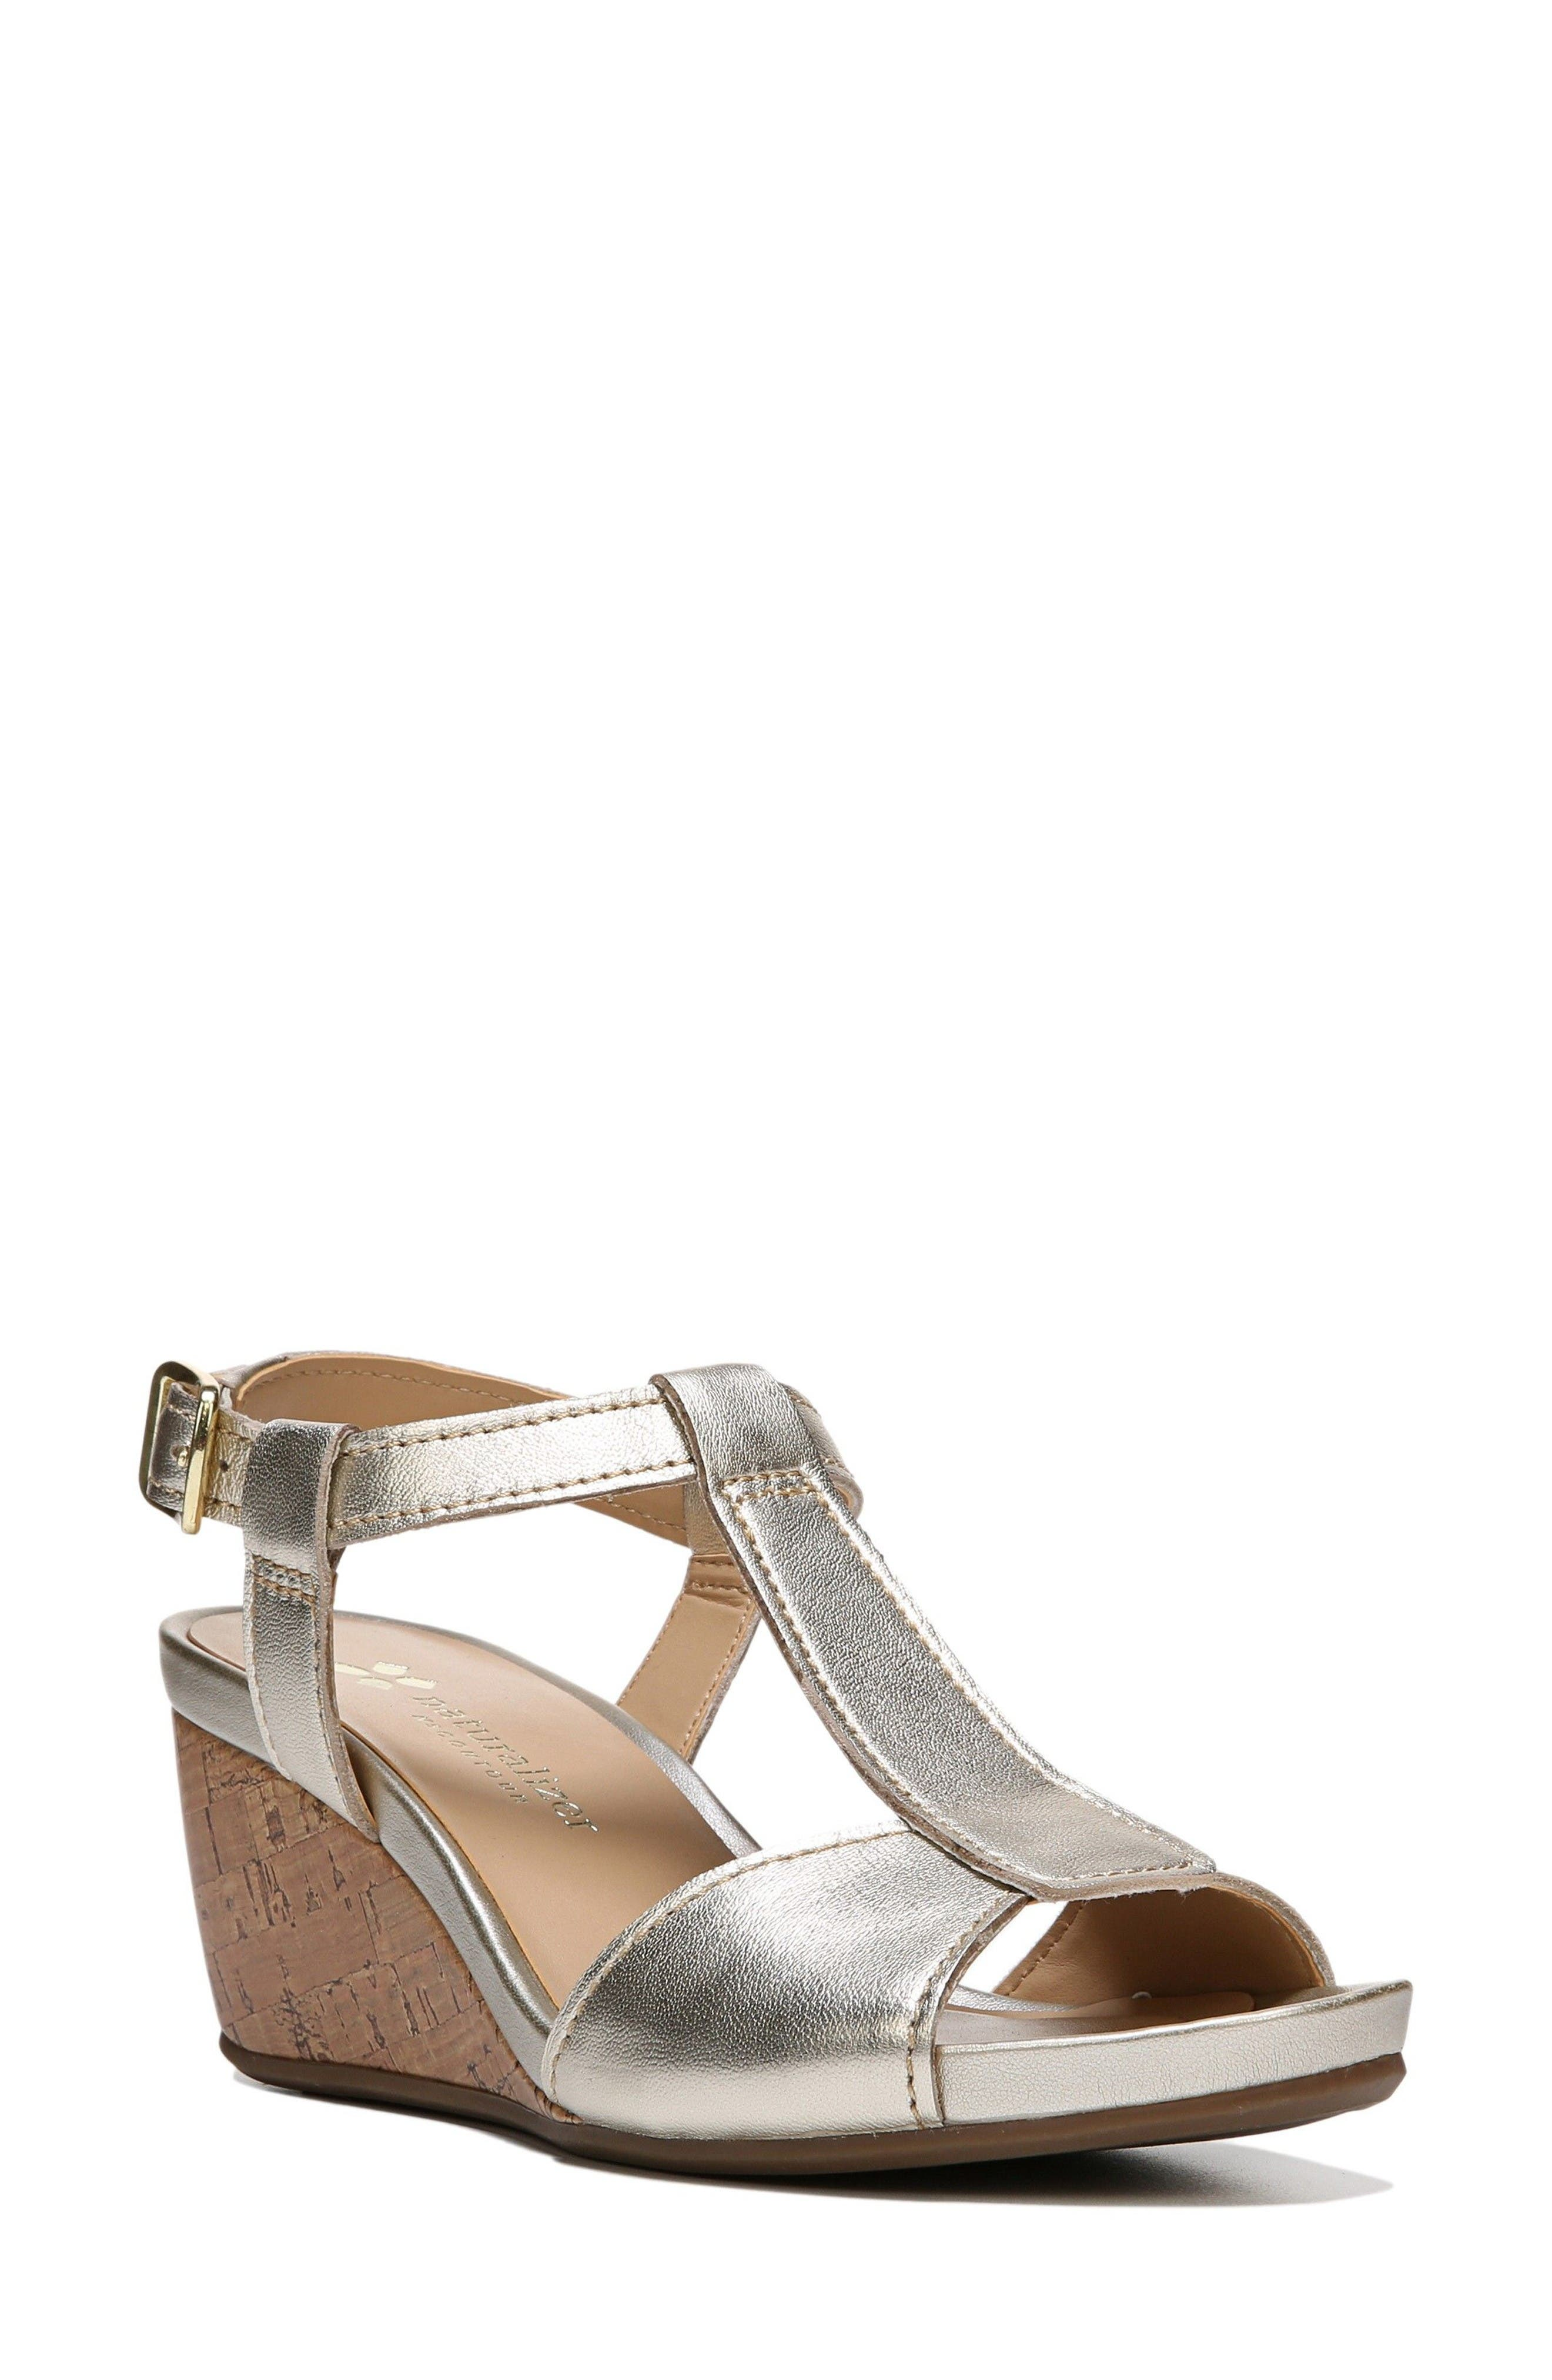 Alternate Image 1 Selected - Naturalizer Camilla Wedge Sandal (Women)